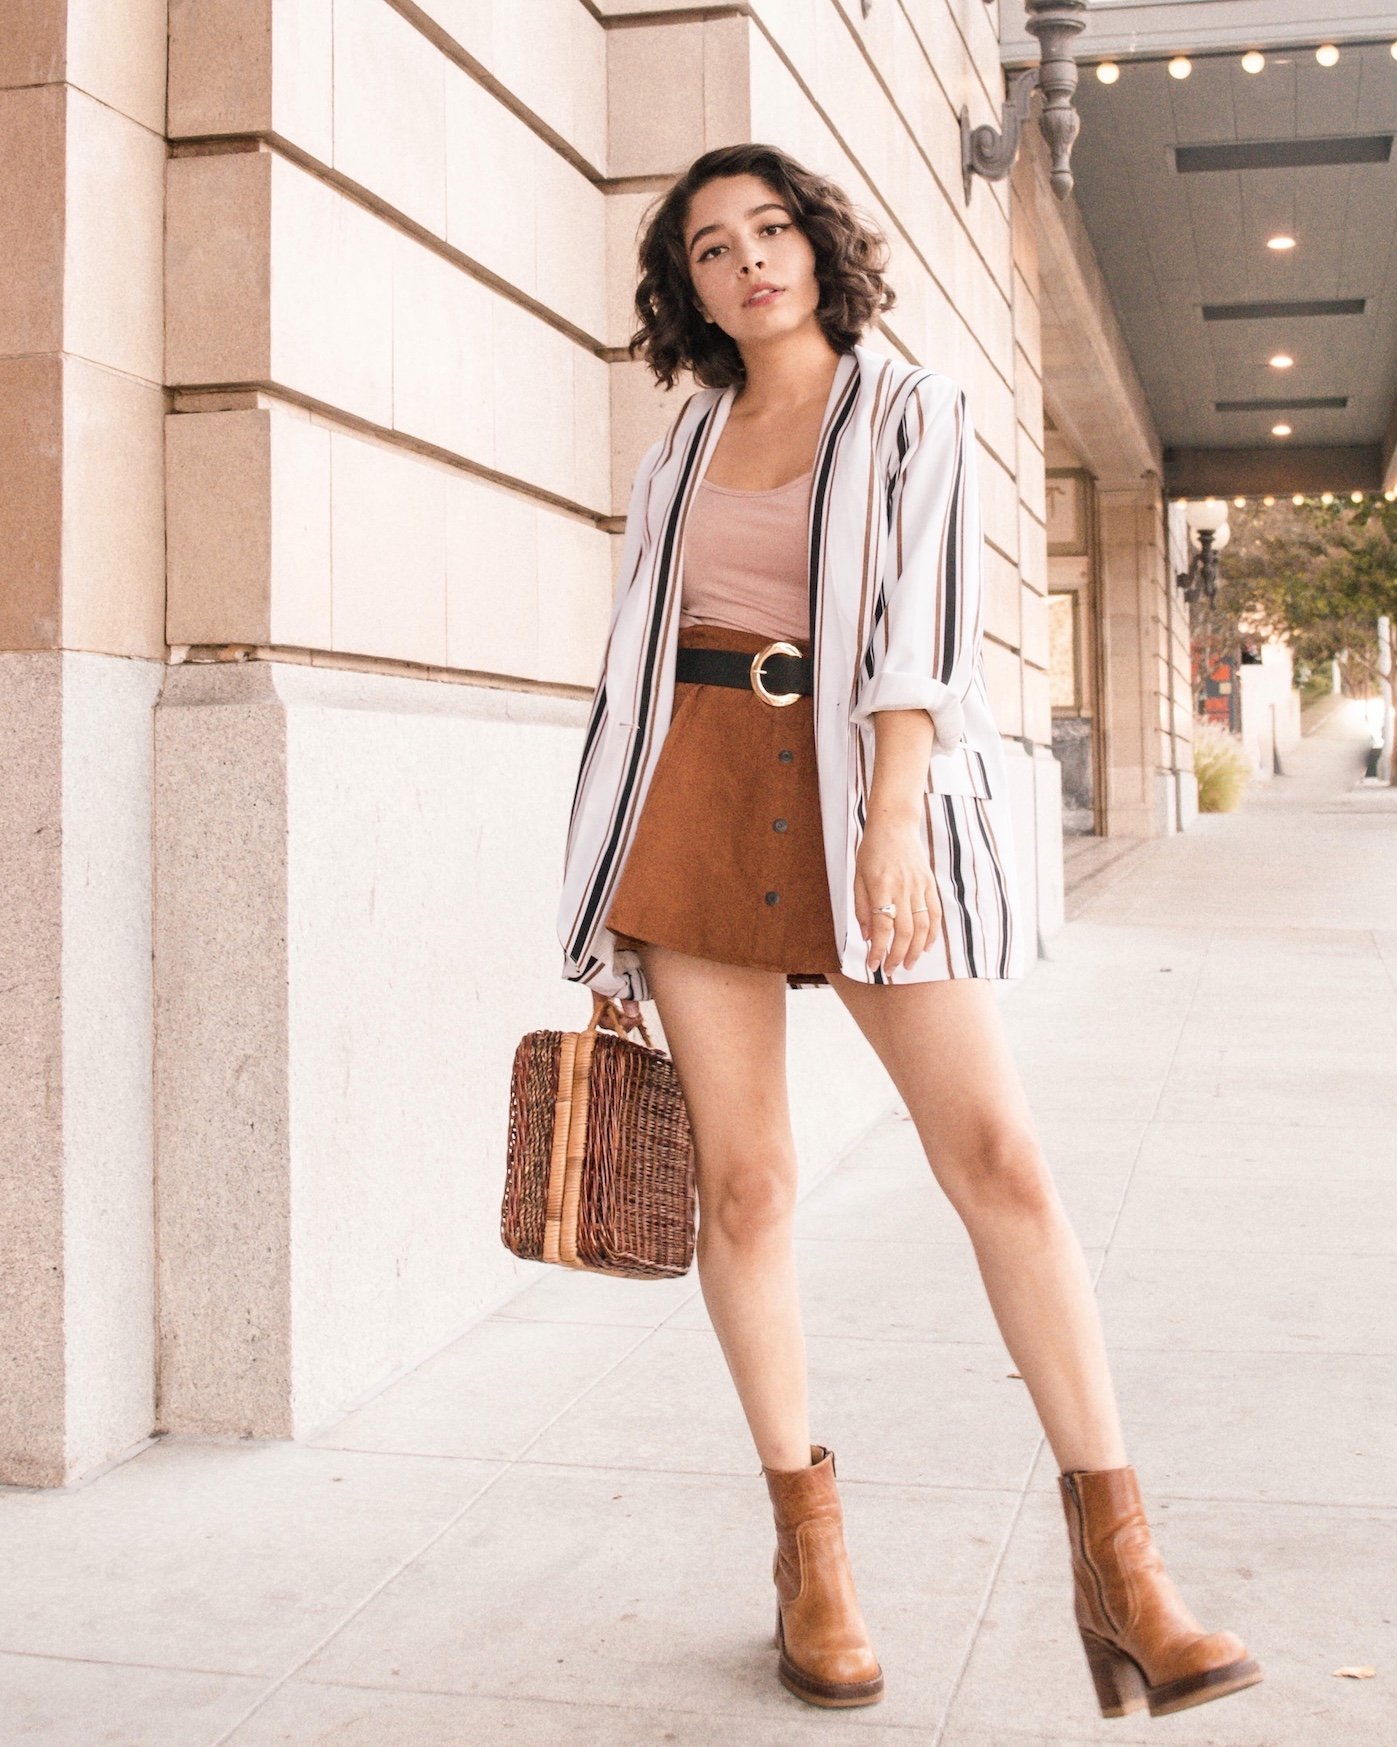 Striped blazer with mini skirt outfit idea // A Week Of Self-Expressive Outfits With Aja Duran From Aja With Love on The Good Trade